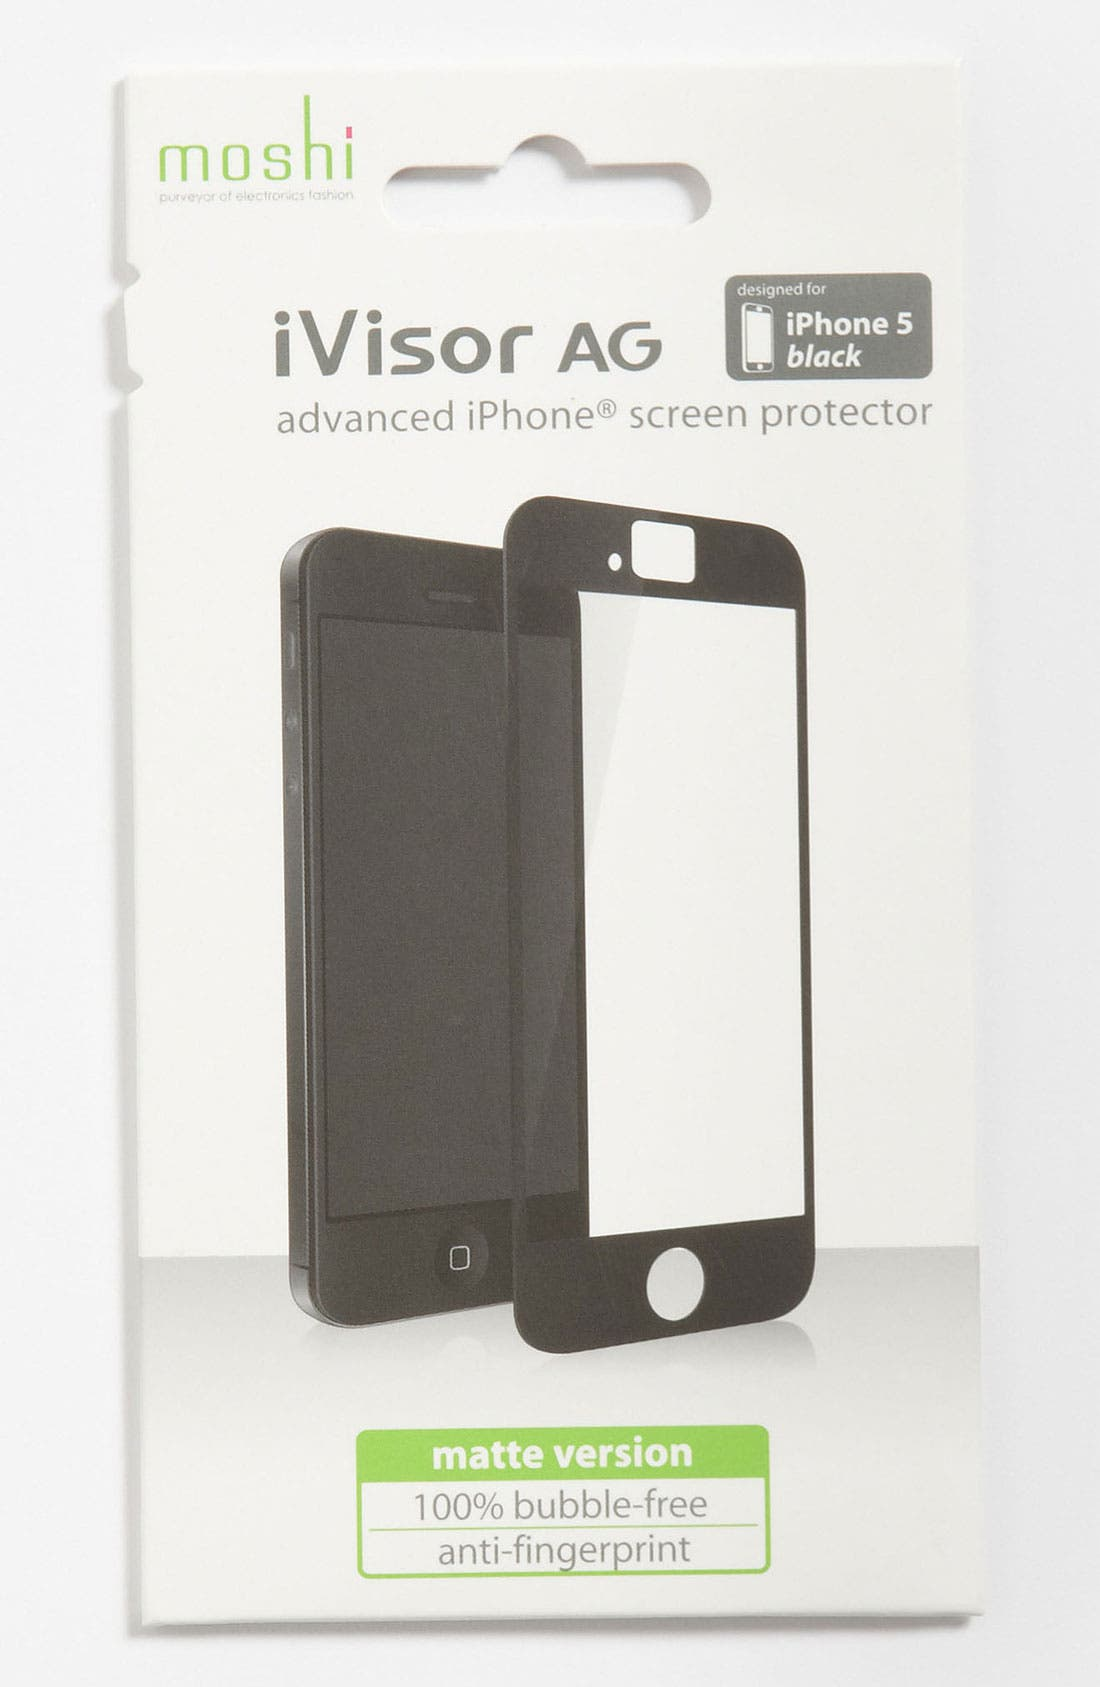 Alternate Image 1 Selected - Moshi 'iVisor AG' iPhone 5 Screen Protector